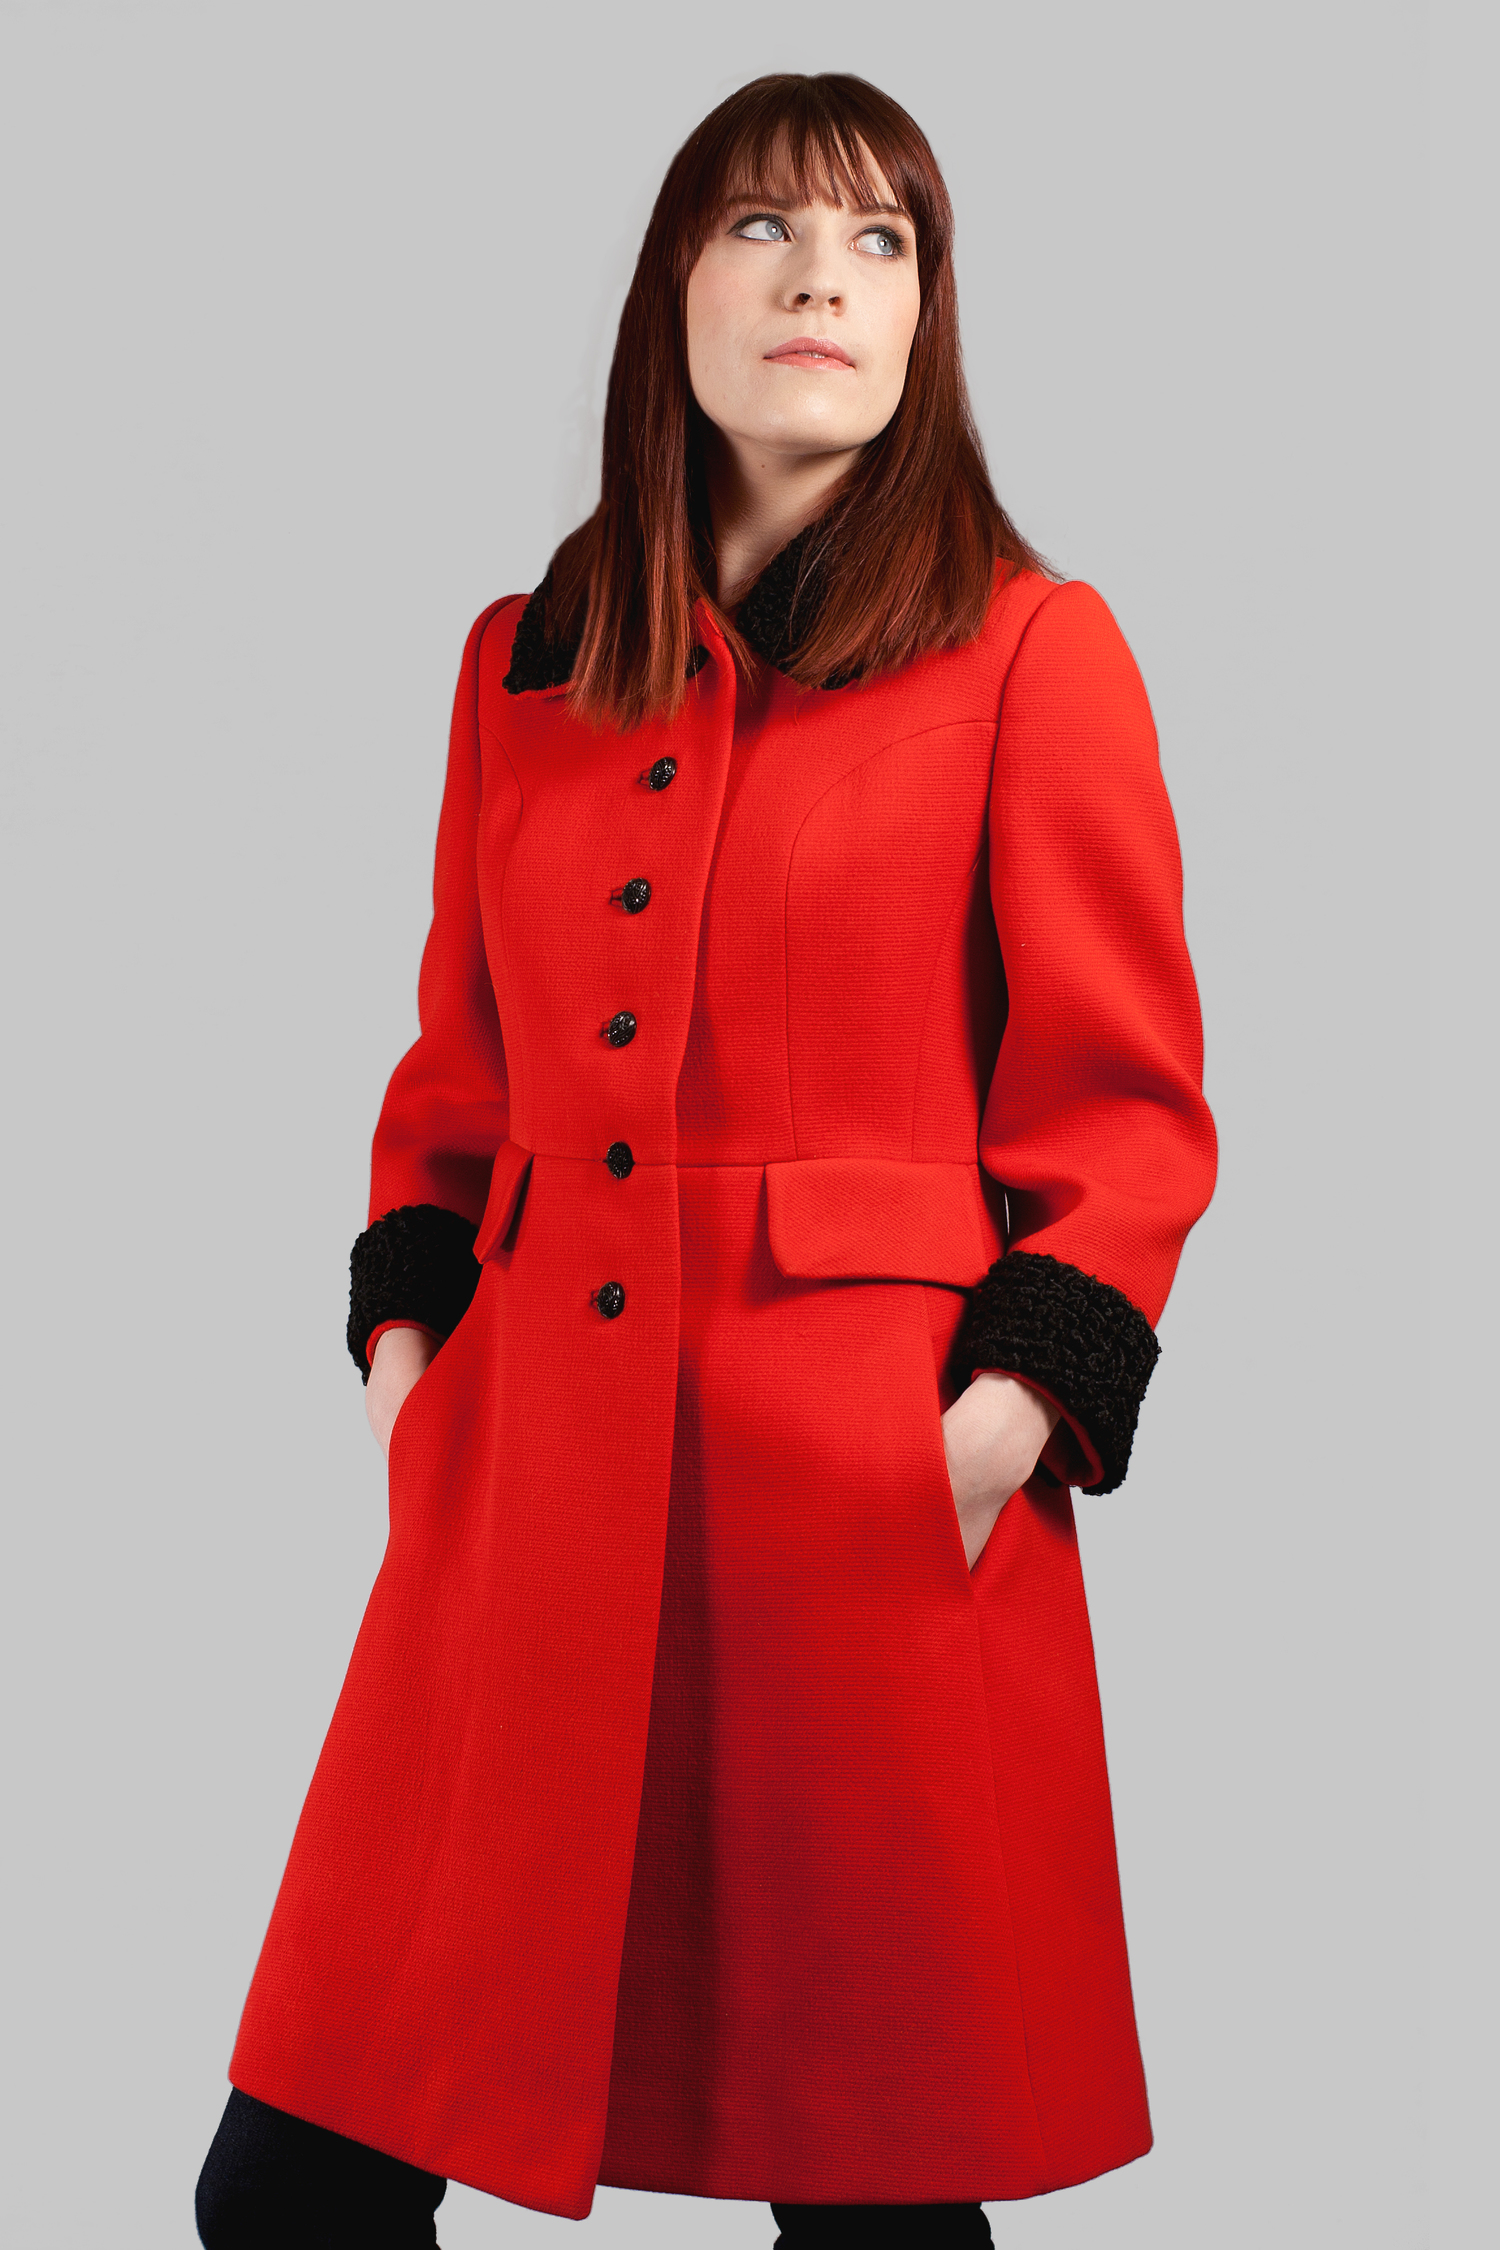 Vintage Rothmoor Red and Black Coat — Afrobeatnik